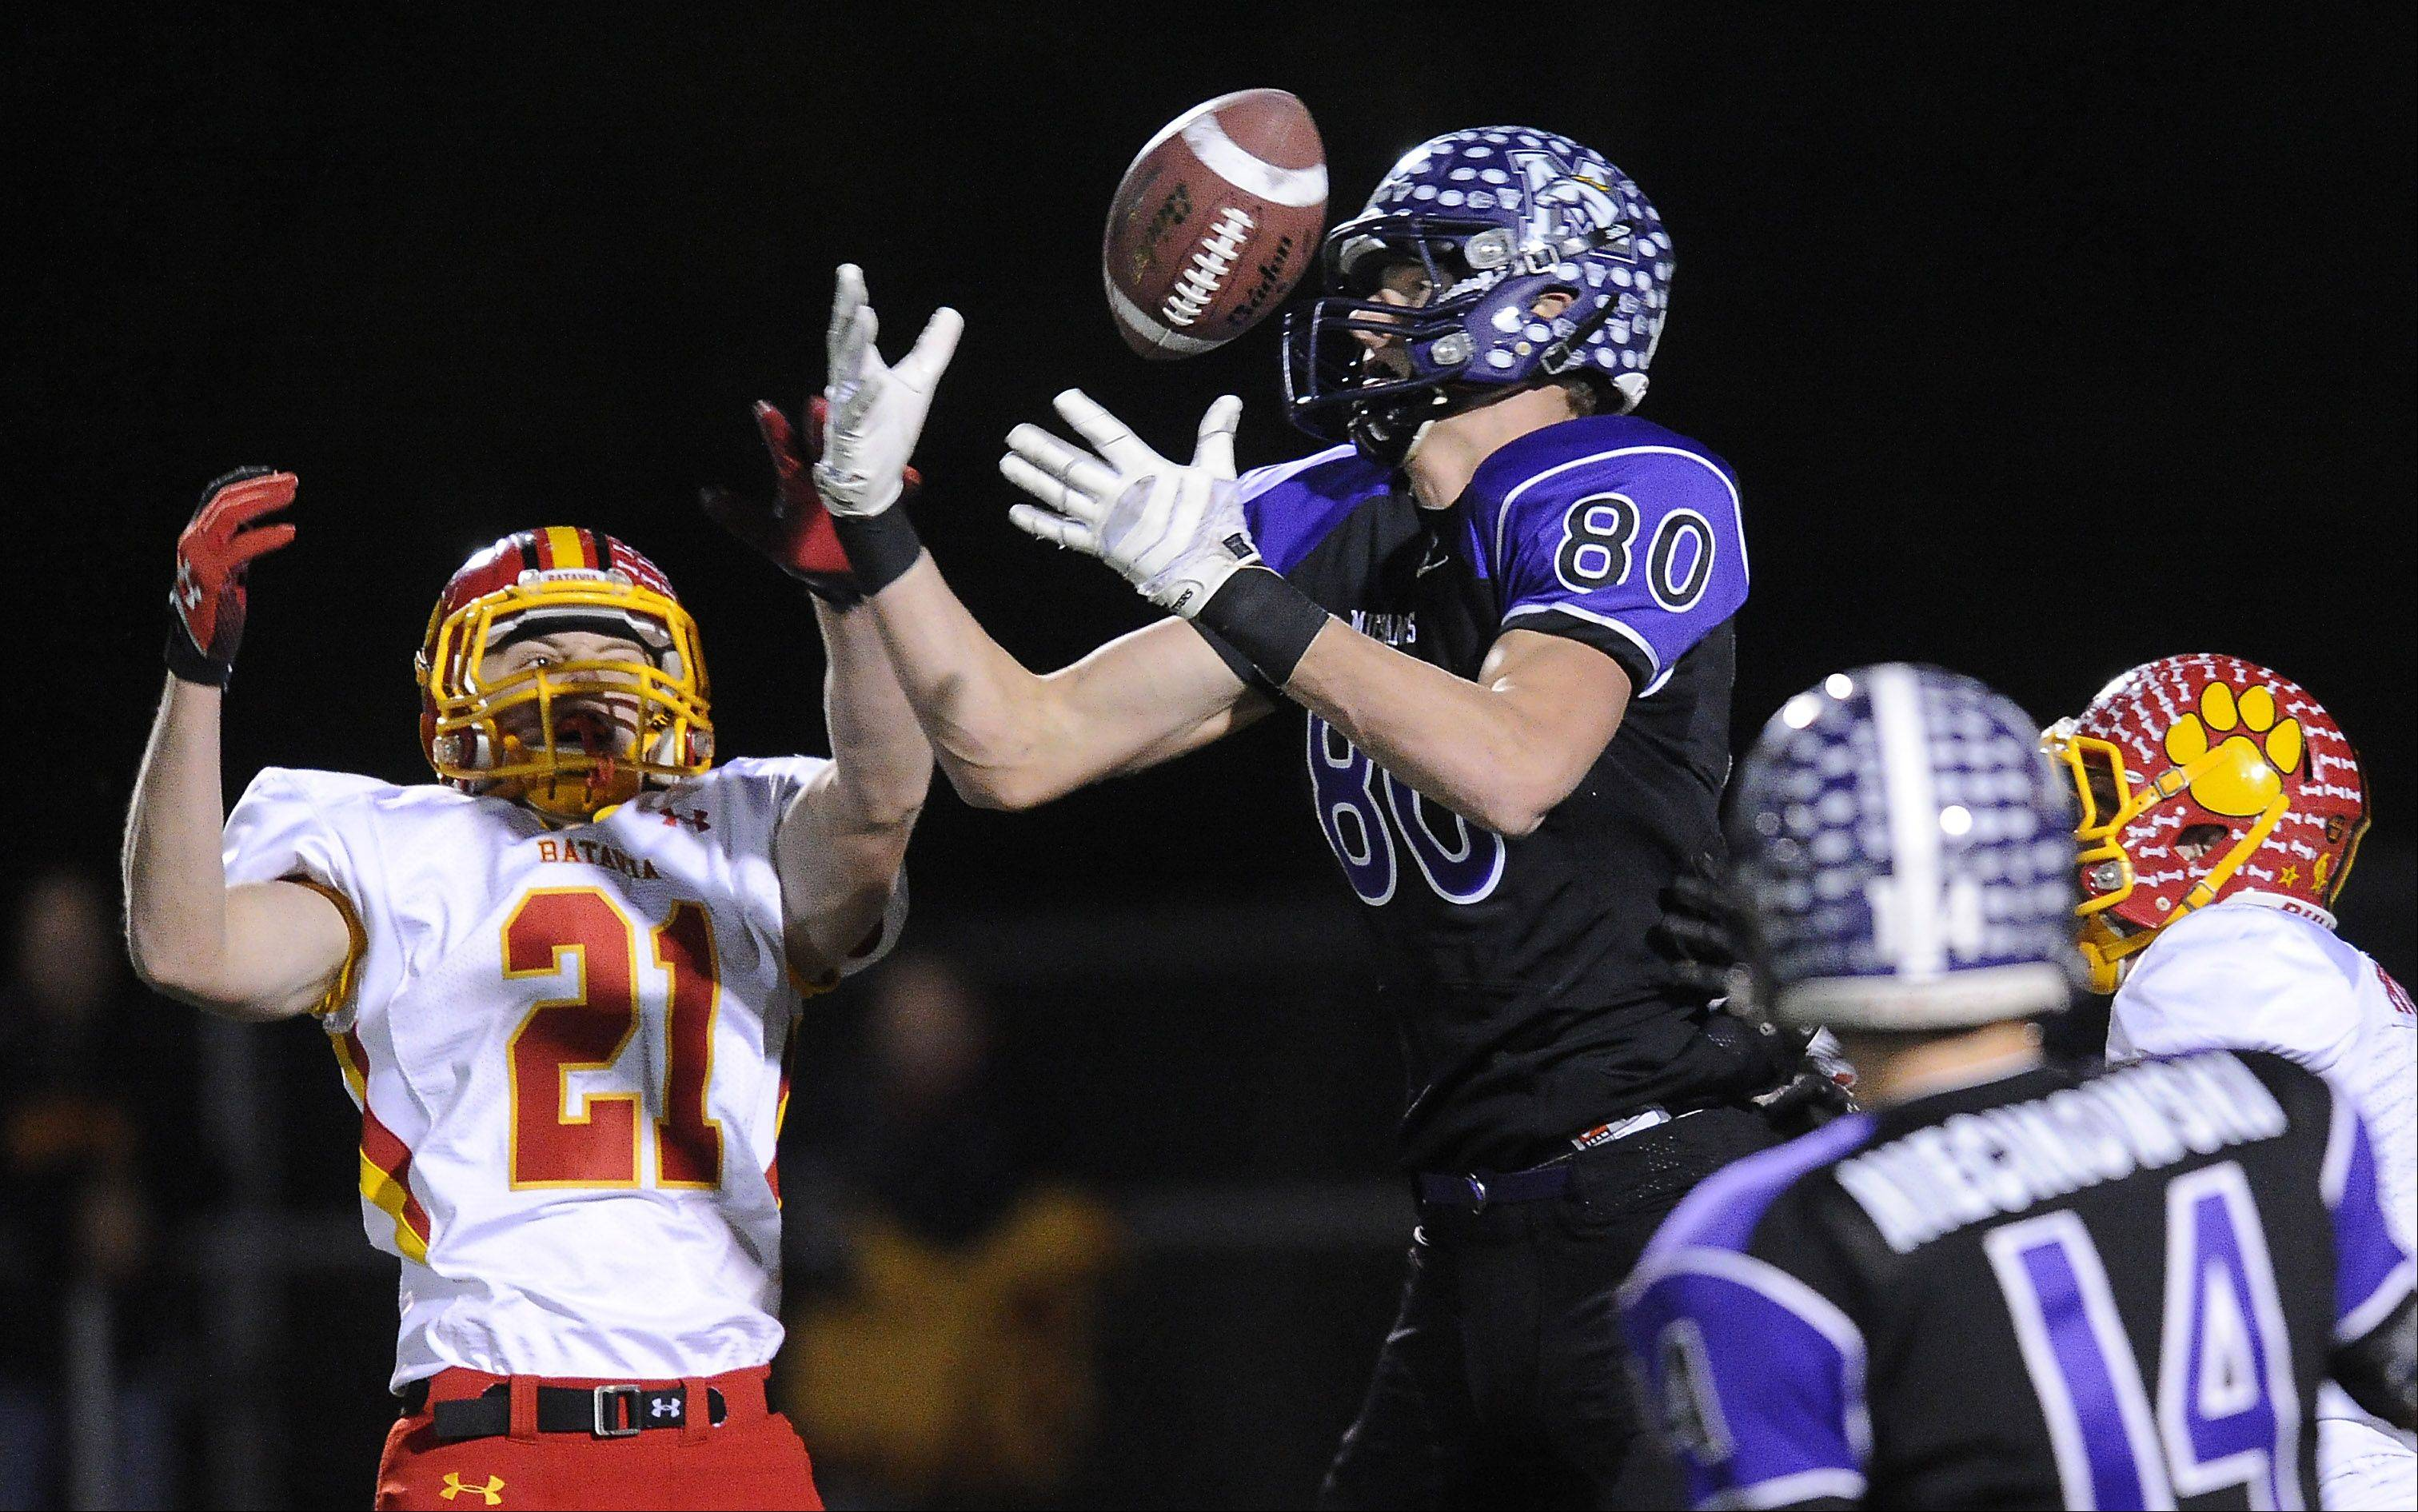 Batavia's Nick Bernabei breaks up a pass intended for Rolling Meadows' Matt Dolan in the second quarter.